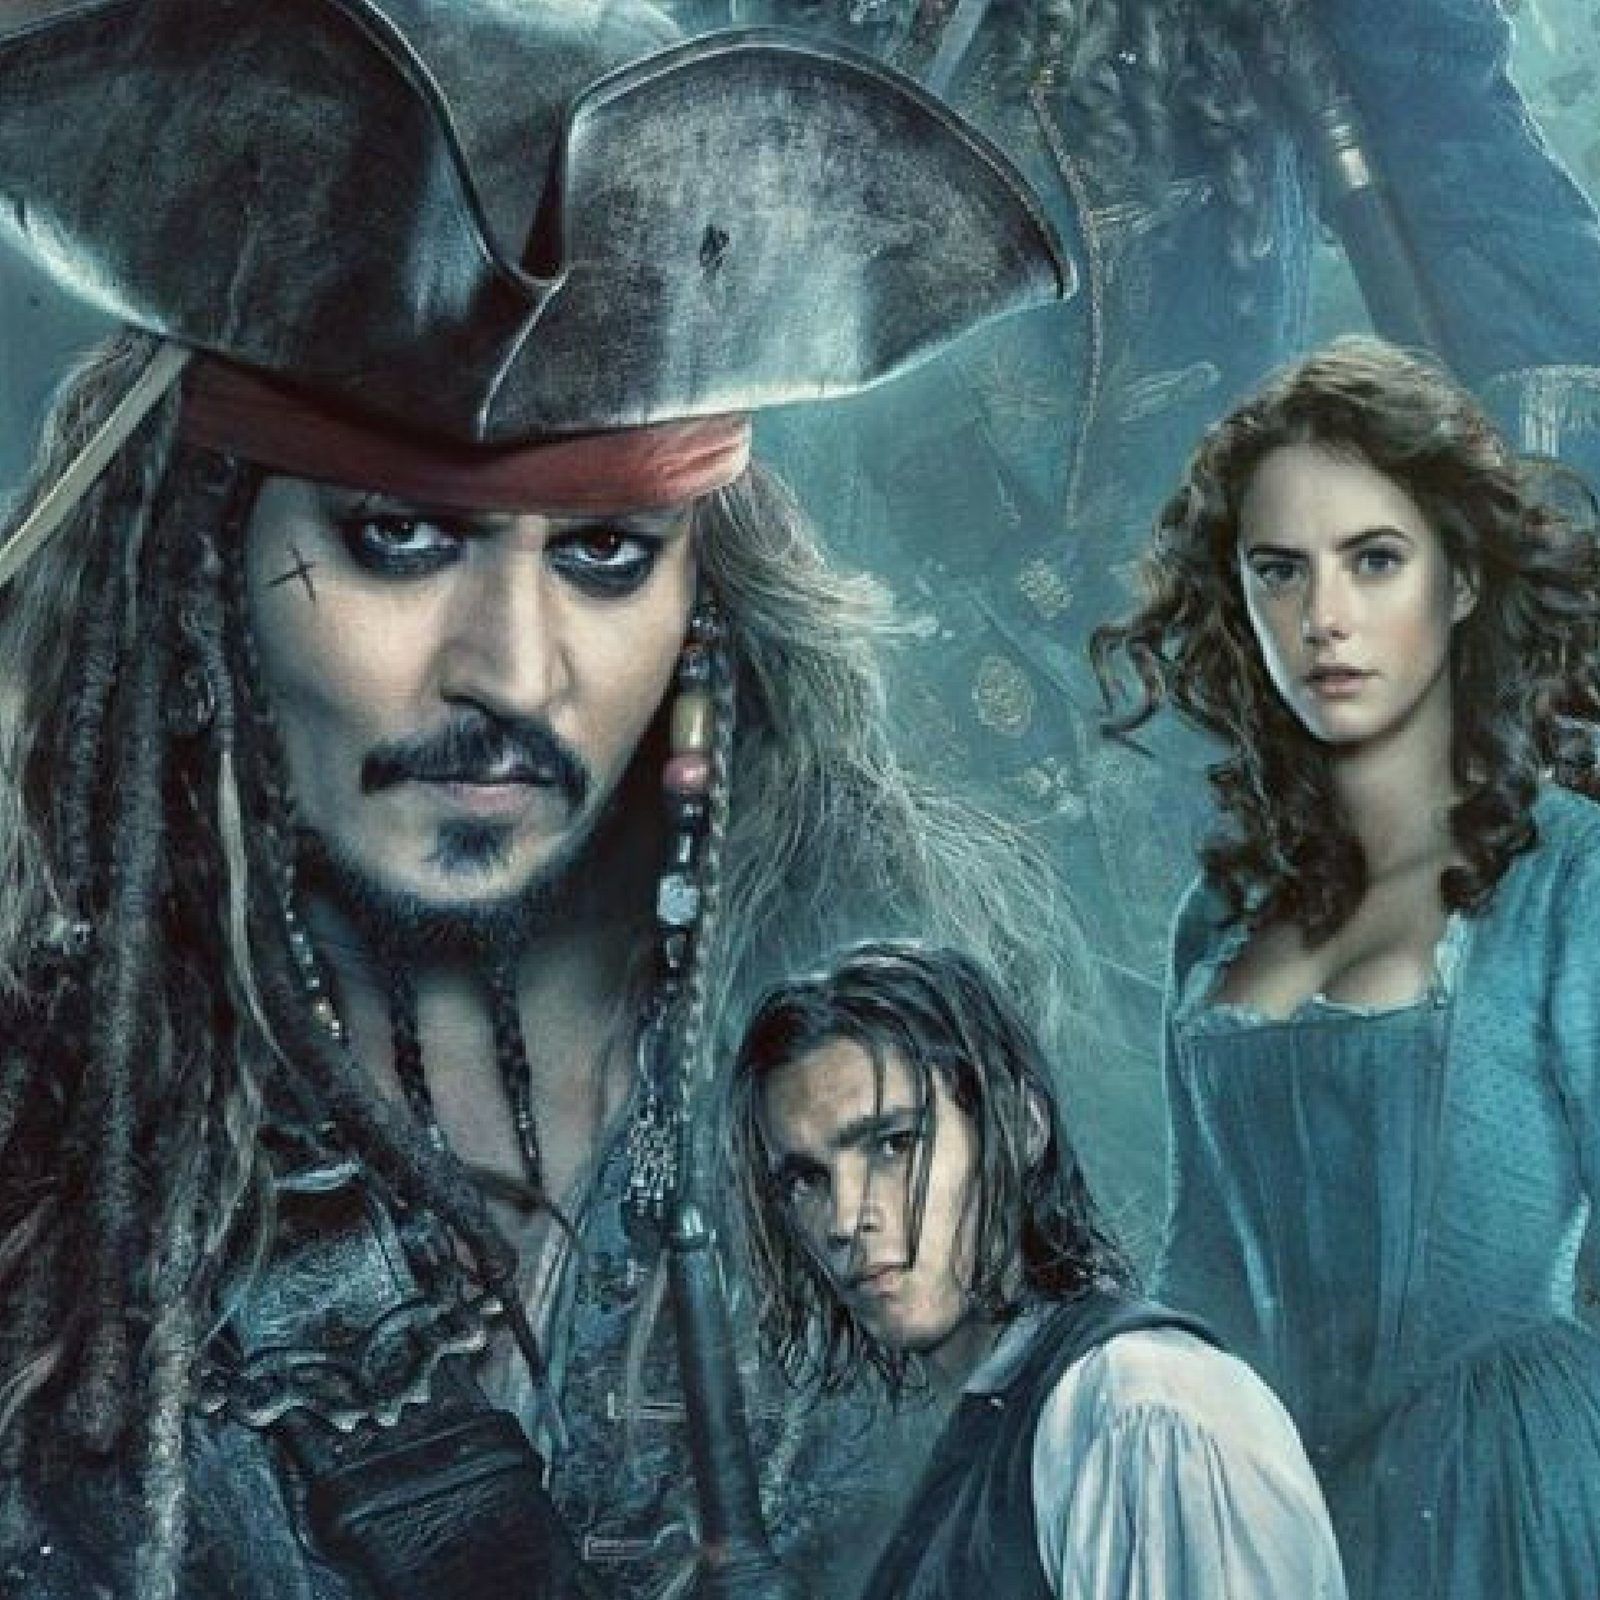 'Pirates of the Caribbean' Should Probably Abandon Ship After 'Dead Men Tell No Tales'